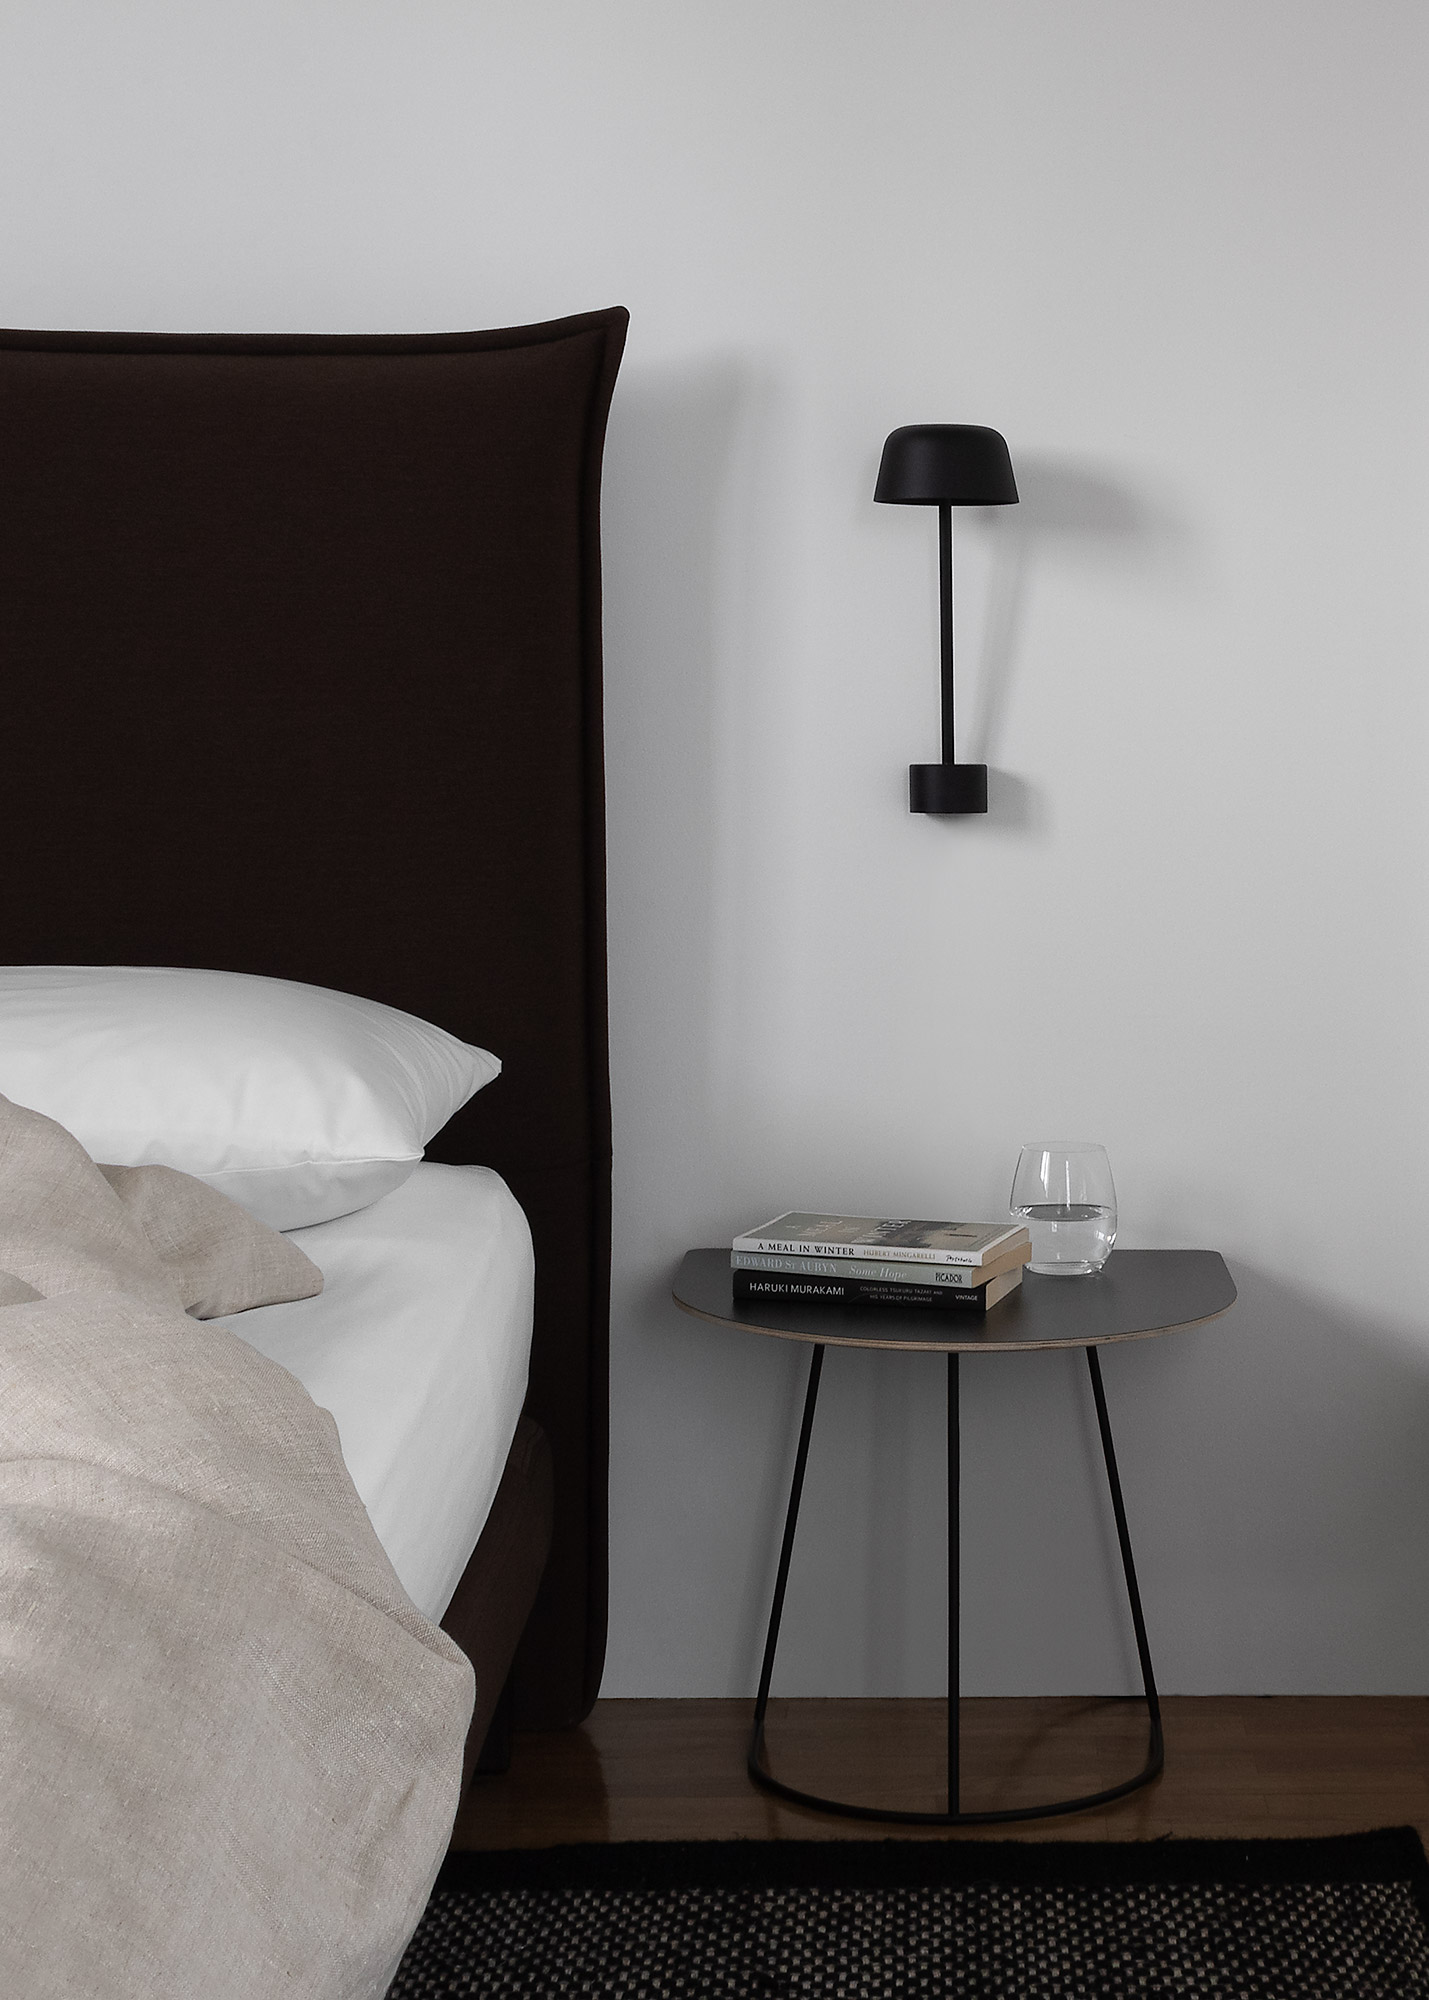 Bed with natural linen and contemporary dark wool headboard, modern black Scandinavian wall light and table, black rug